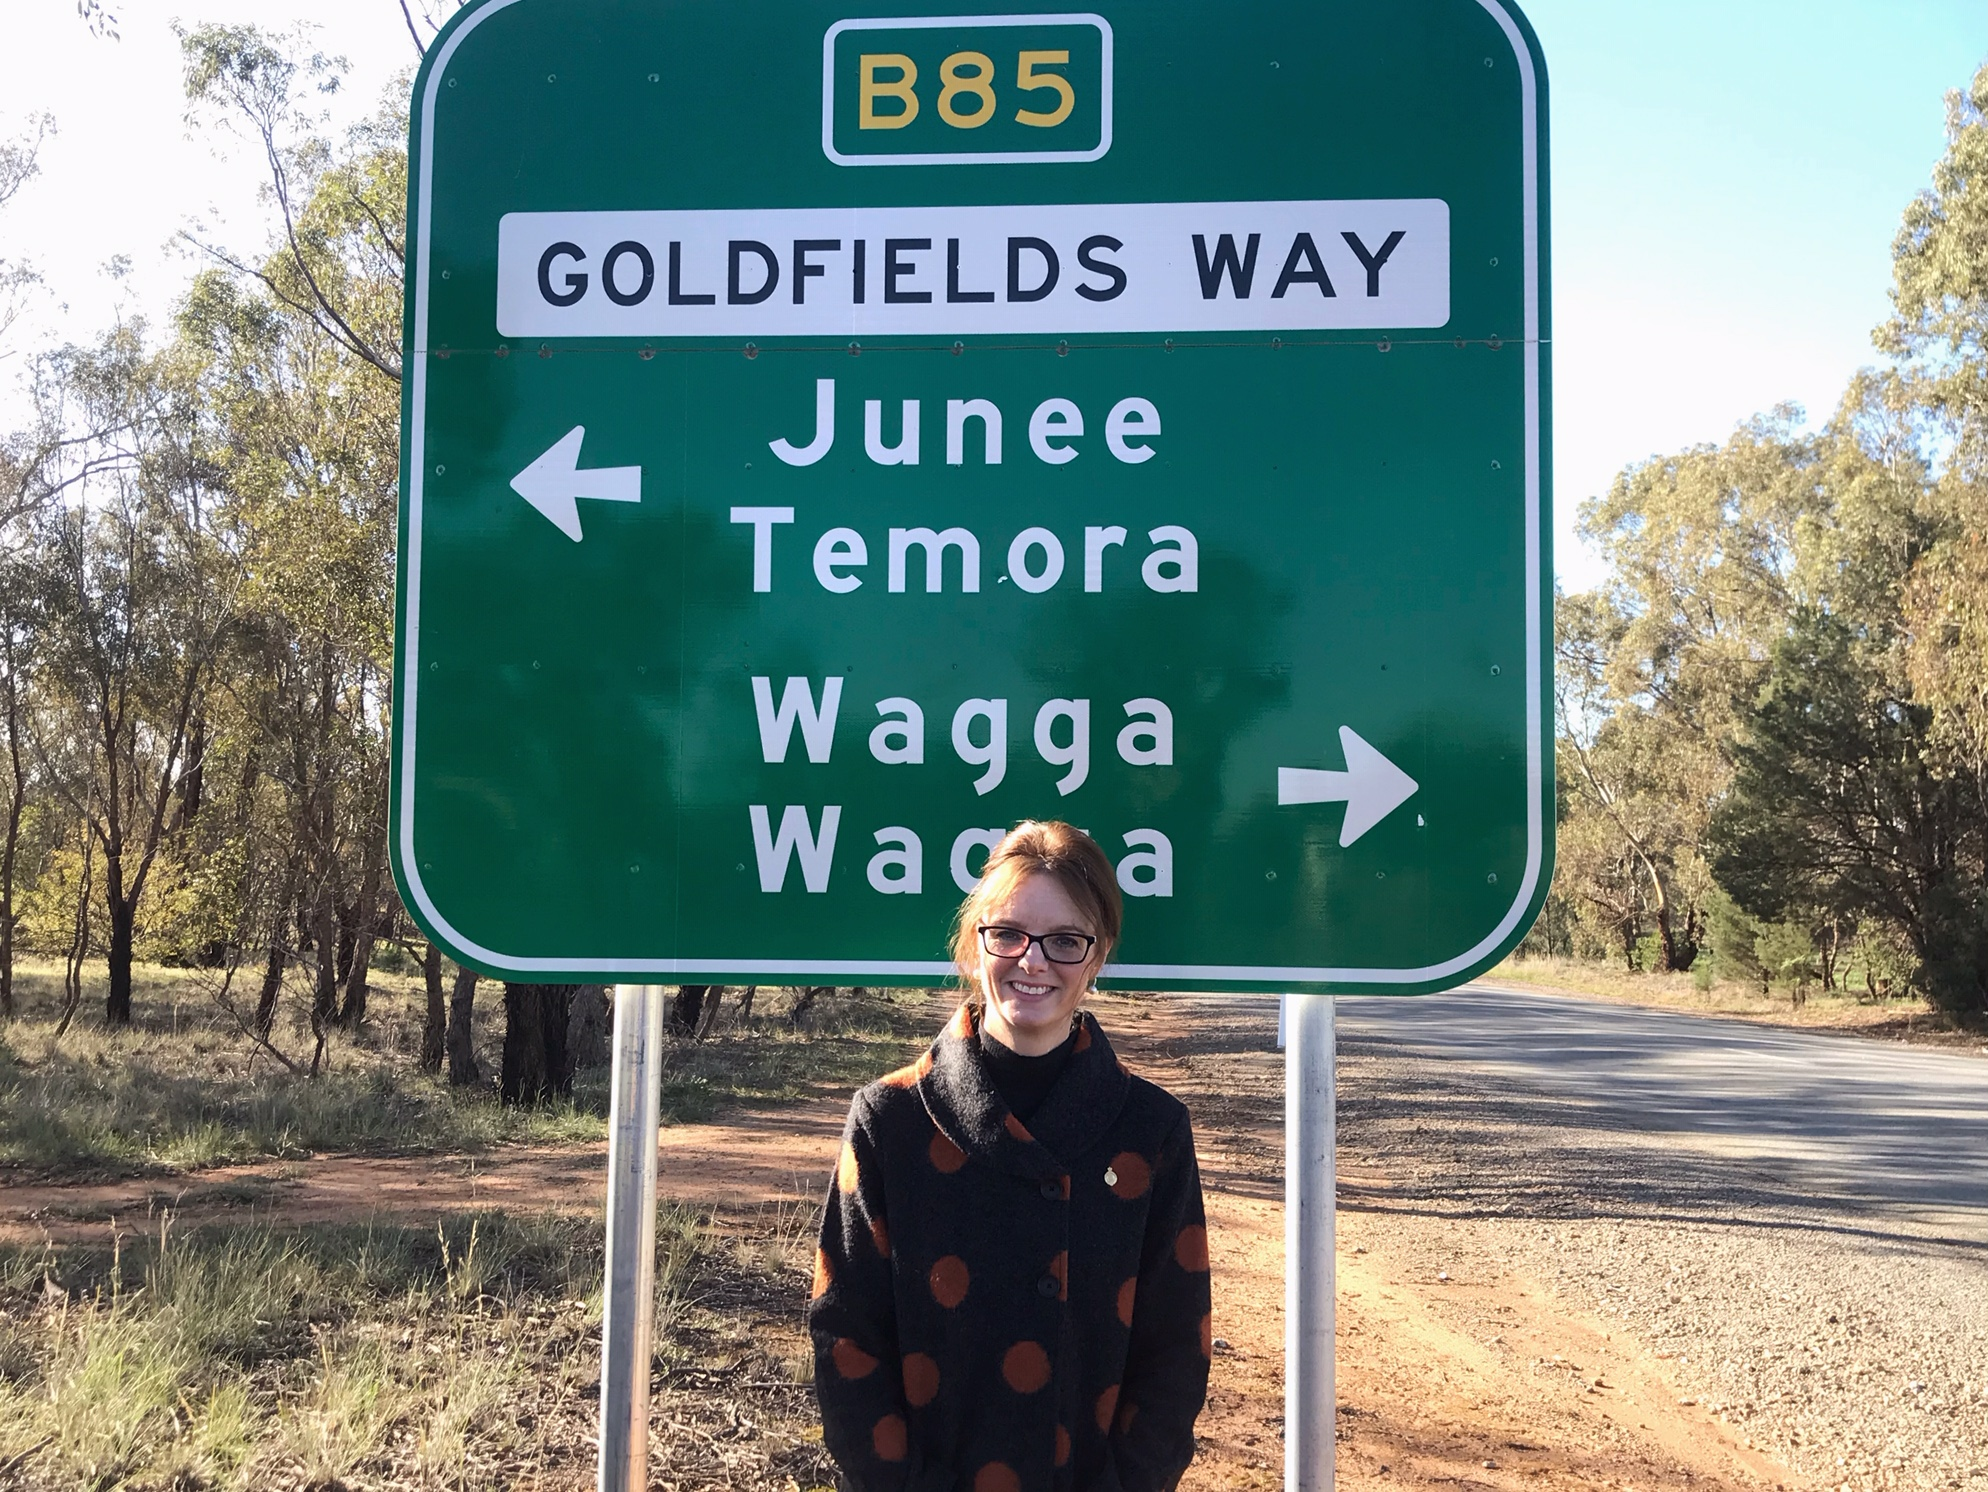 Steph Cooke stands in front of a sign for the Goldenfields Way telling the direction to Wagga Wagga, Temora and Junee.